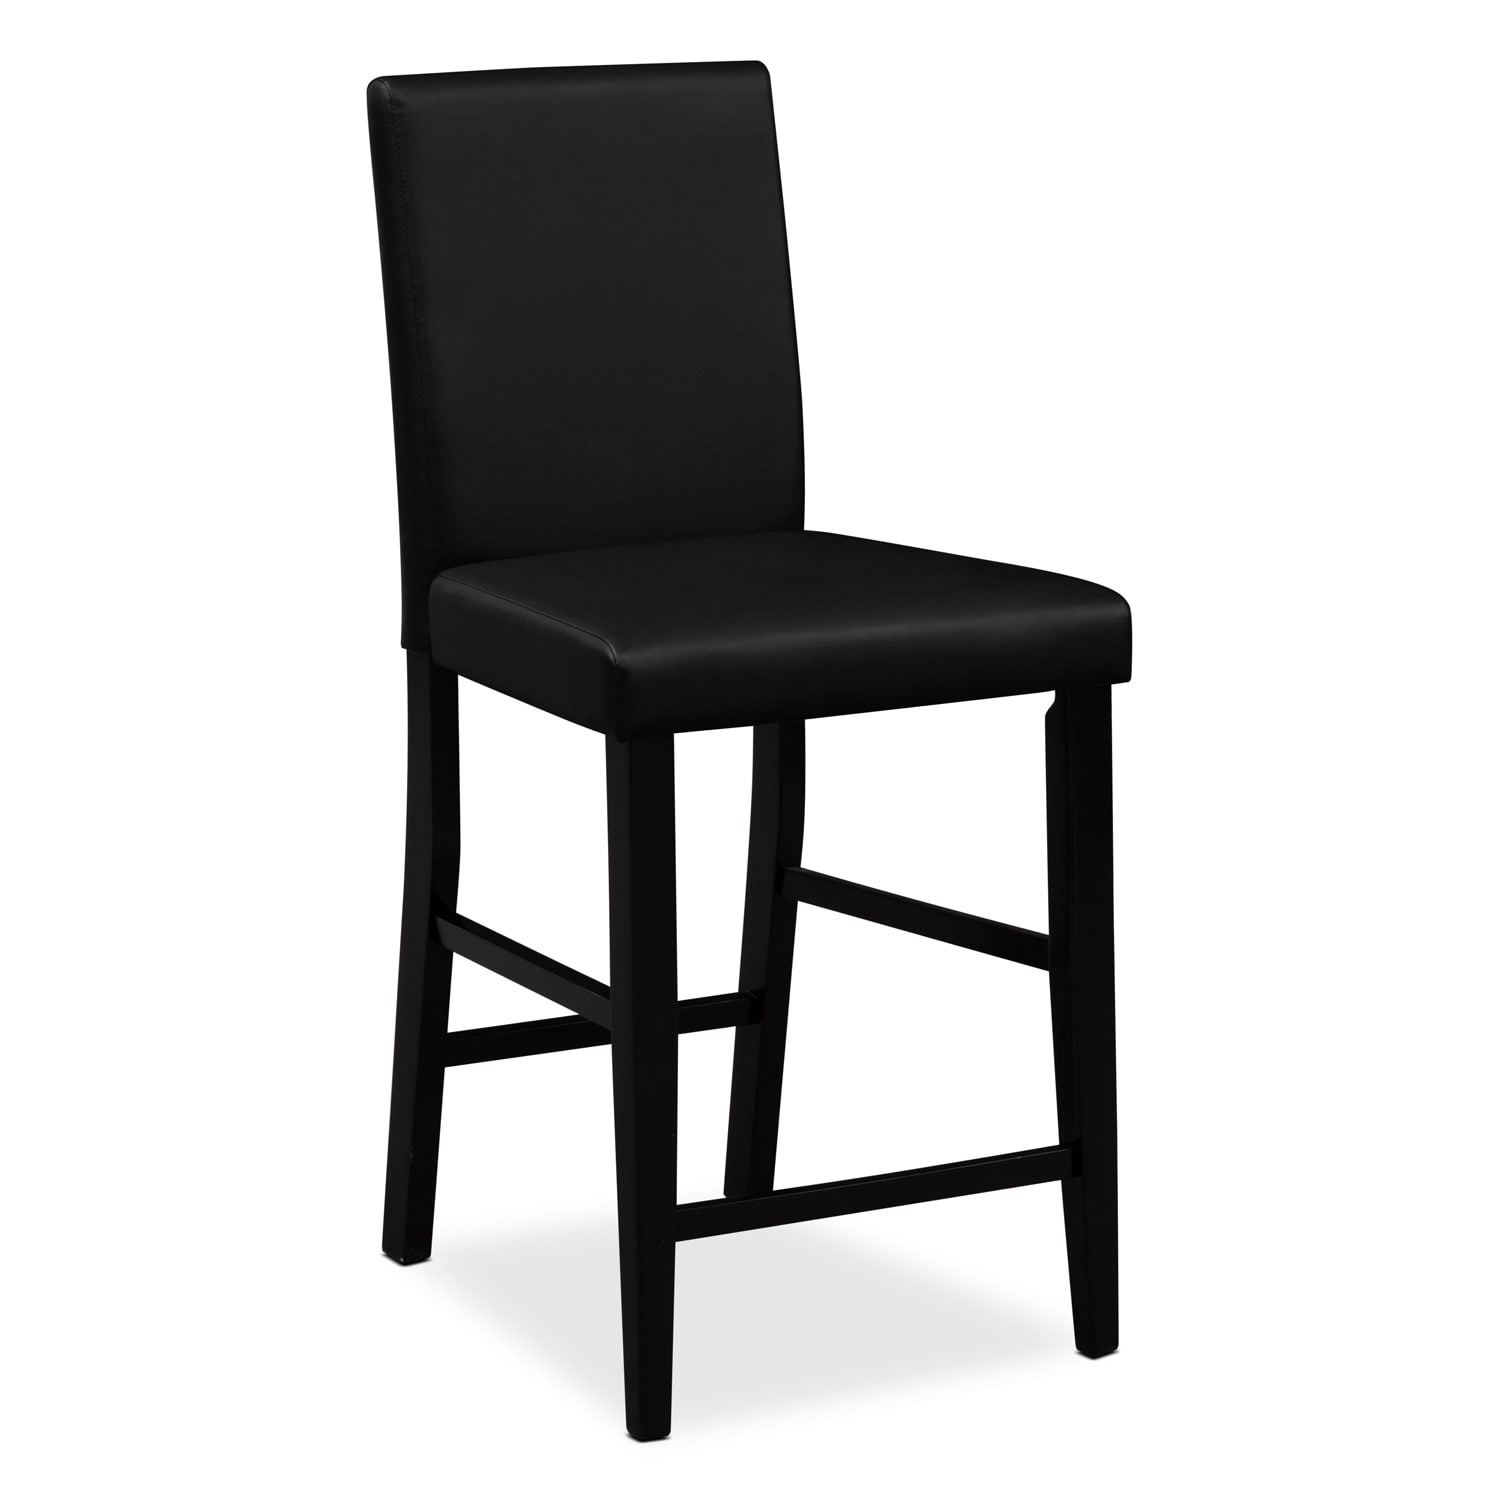 Shadow Counter Height Stool Black Value City Furniture : 290301 from www.valuecityfurniture.com size 1500 x 1500 jpeg 81kB